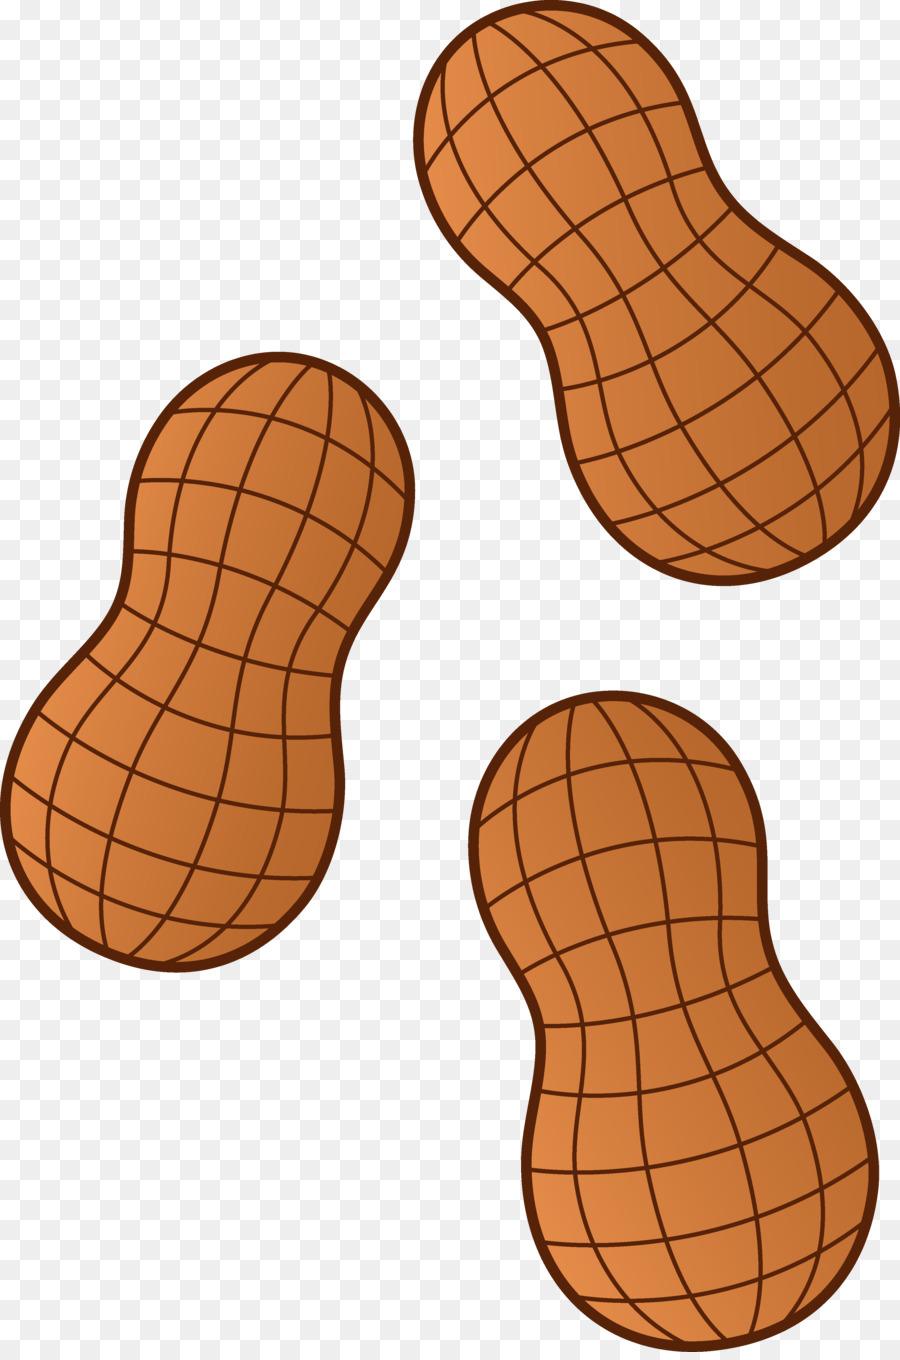 Free Peanut Clipart Pictures.